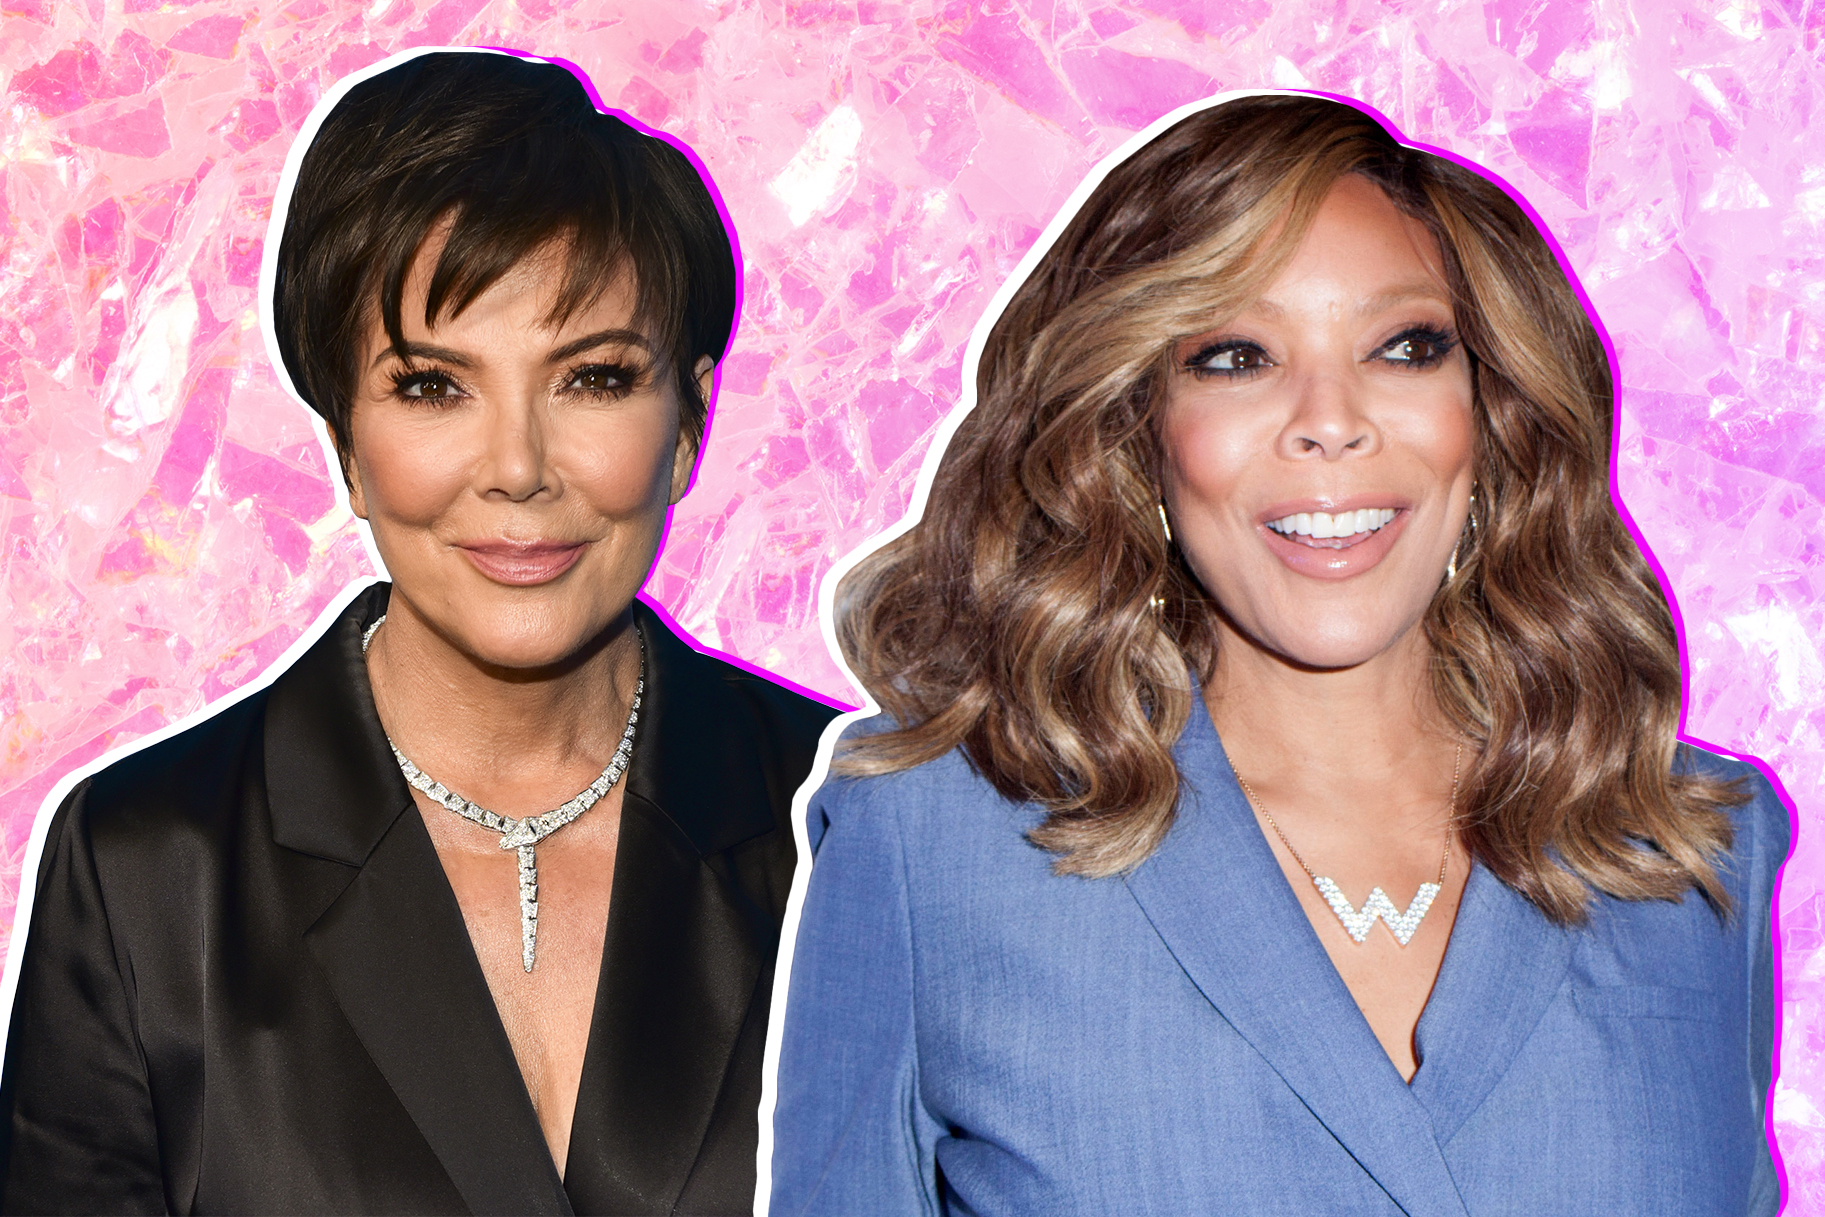 Kris Jenner and Wendy Williams